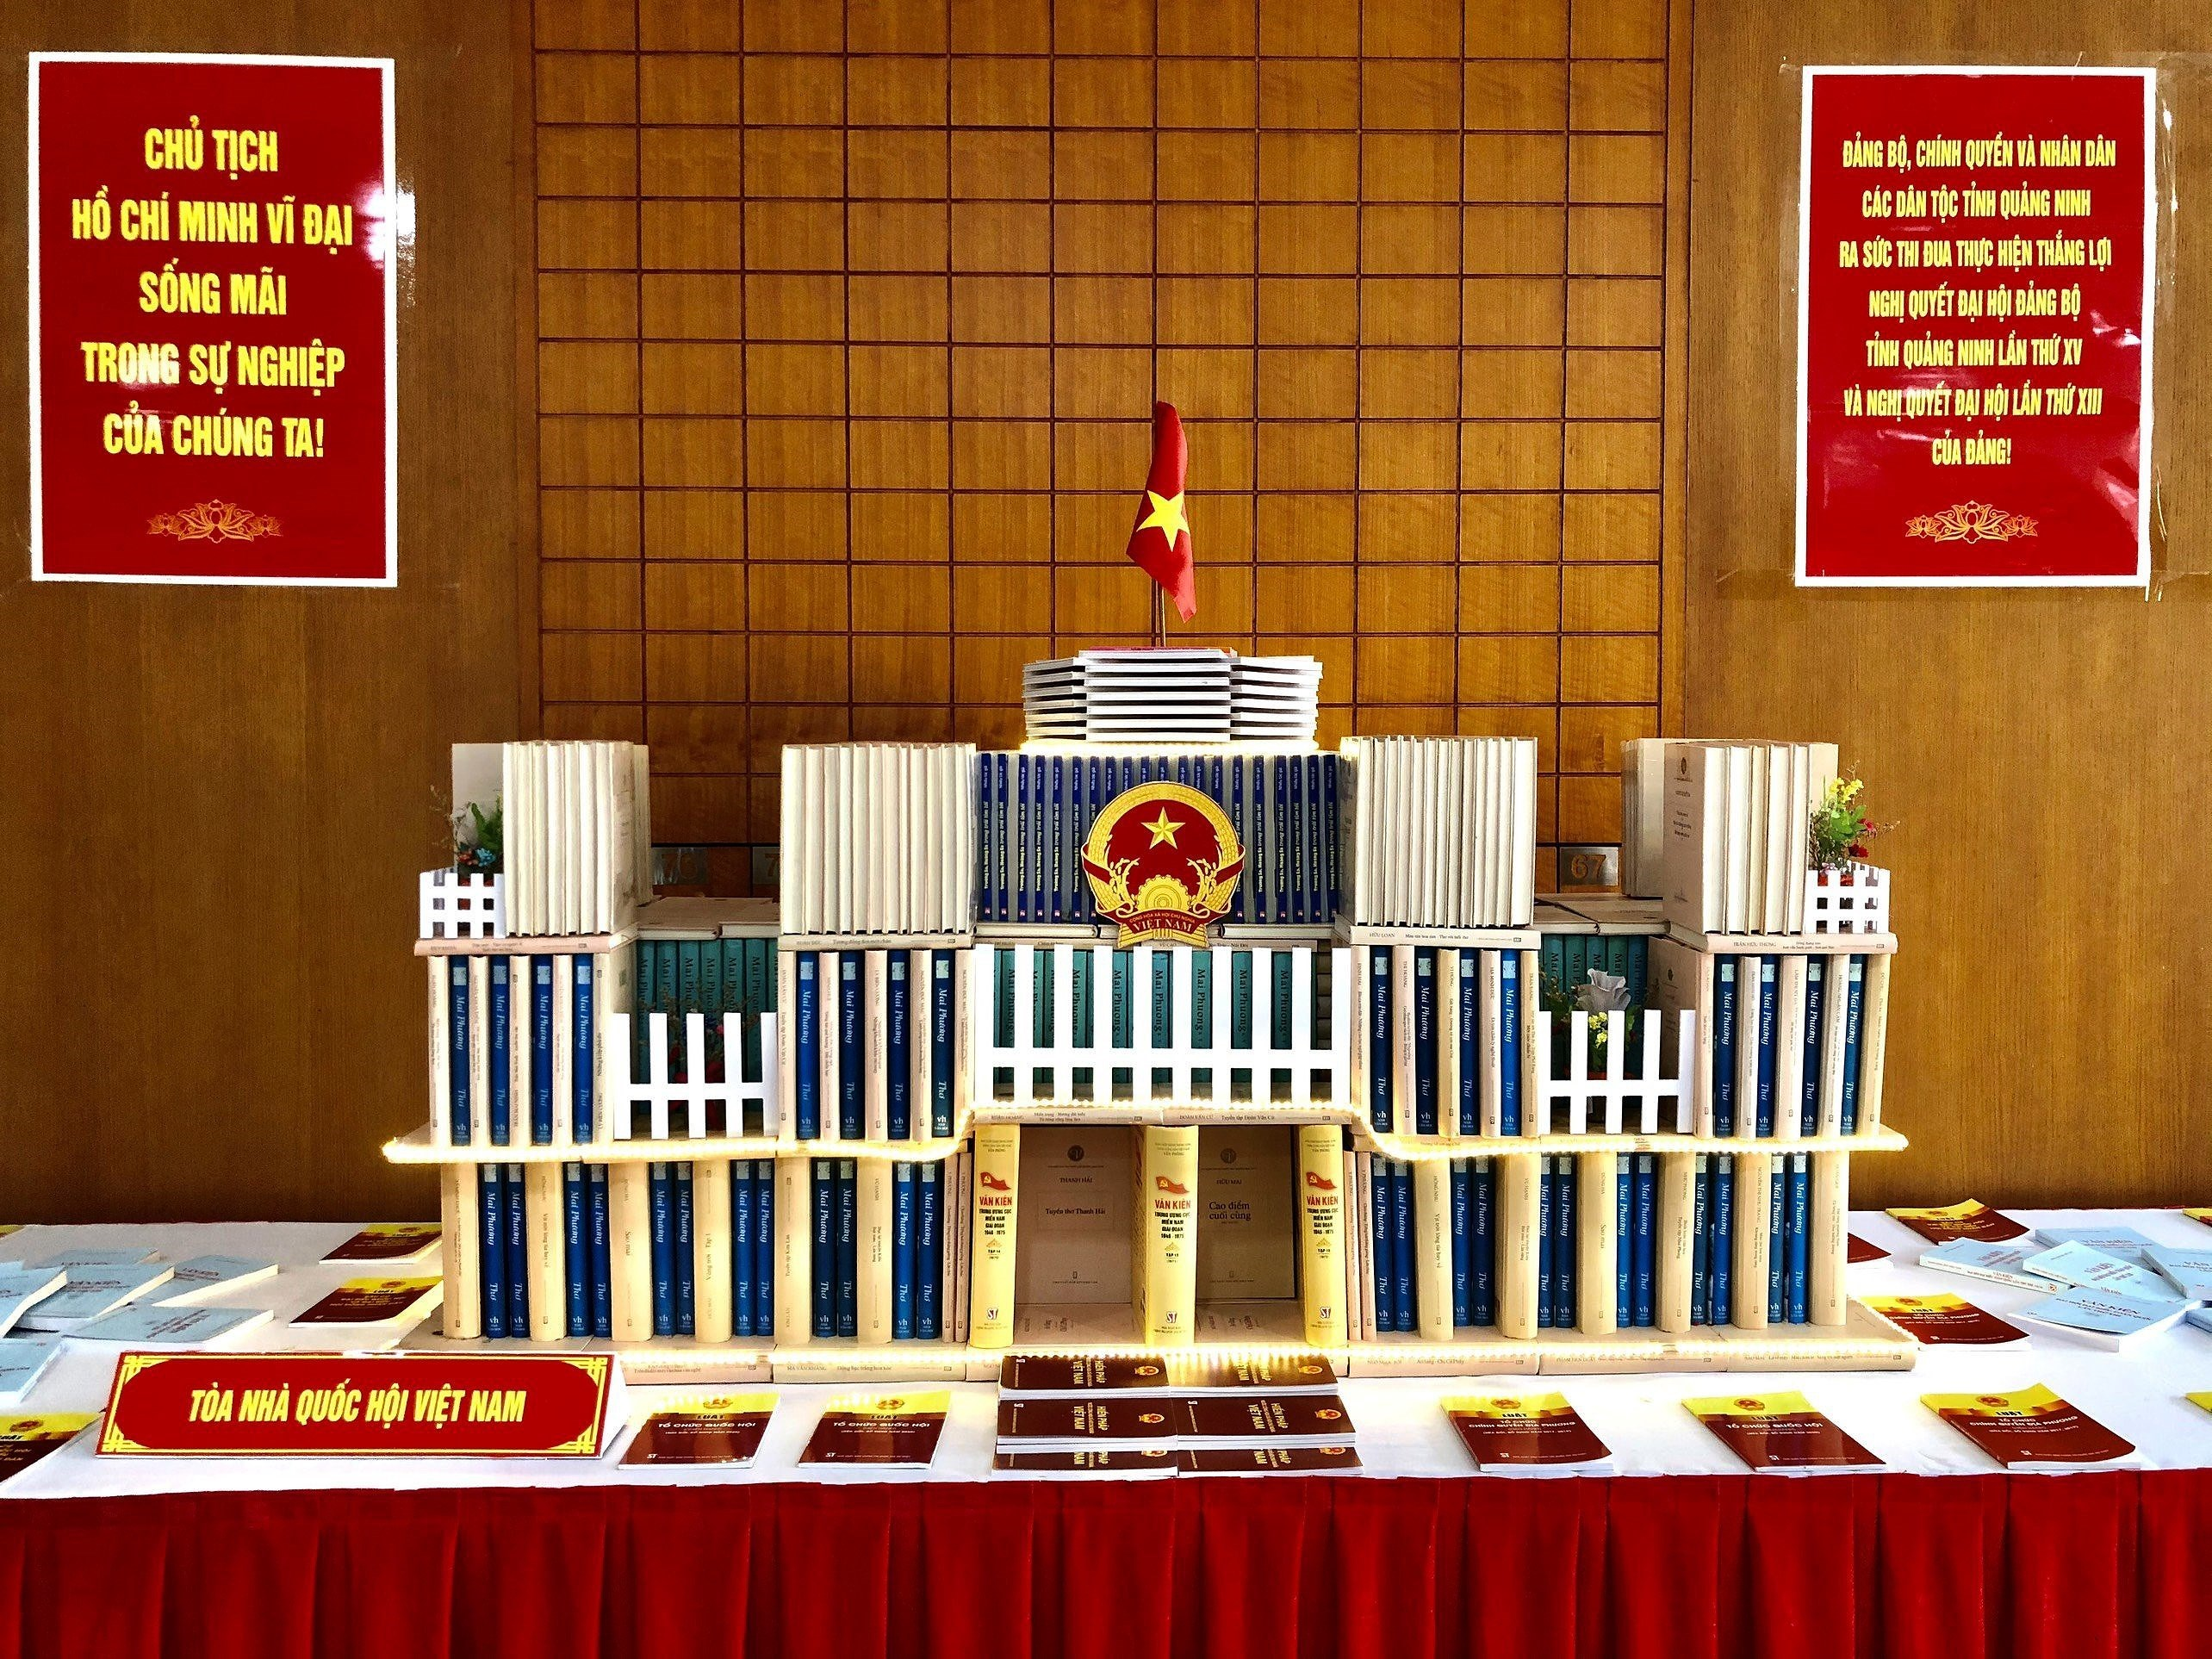 Books on election on display in Quang Ninh province hinh anh 4